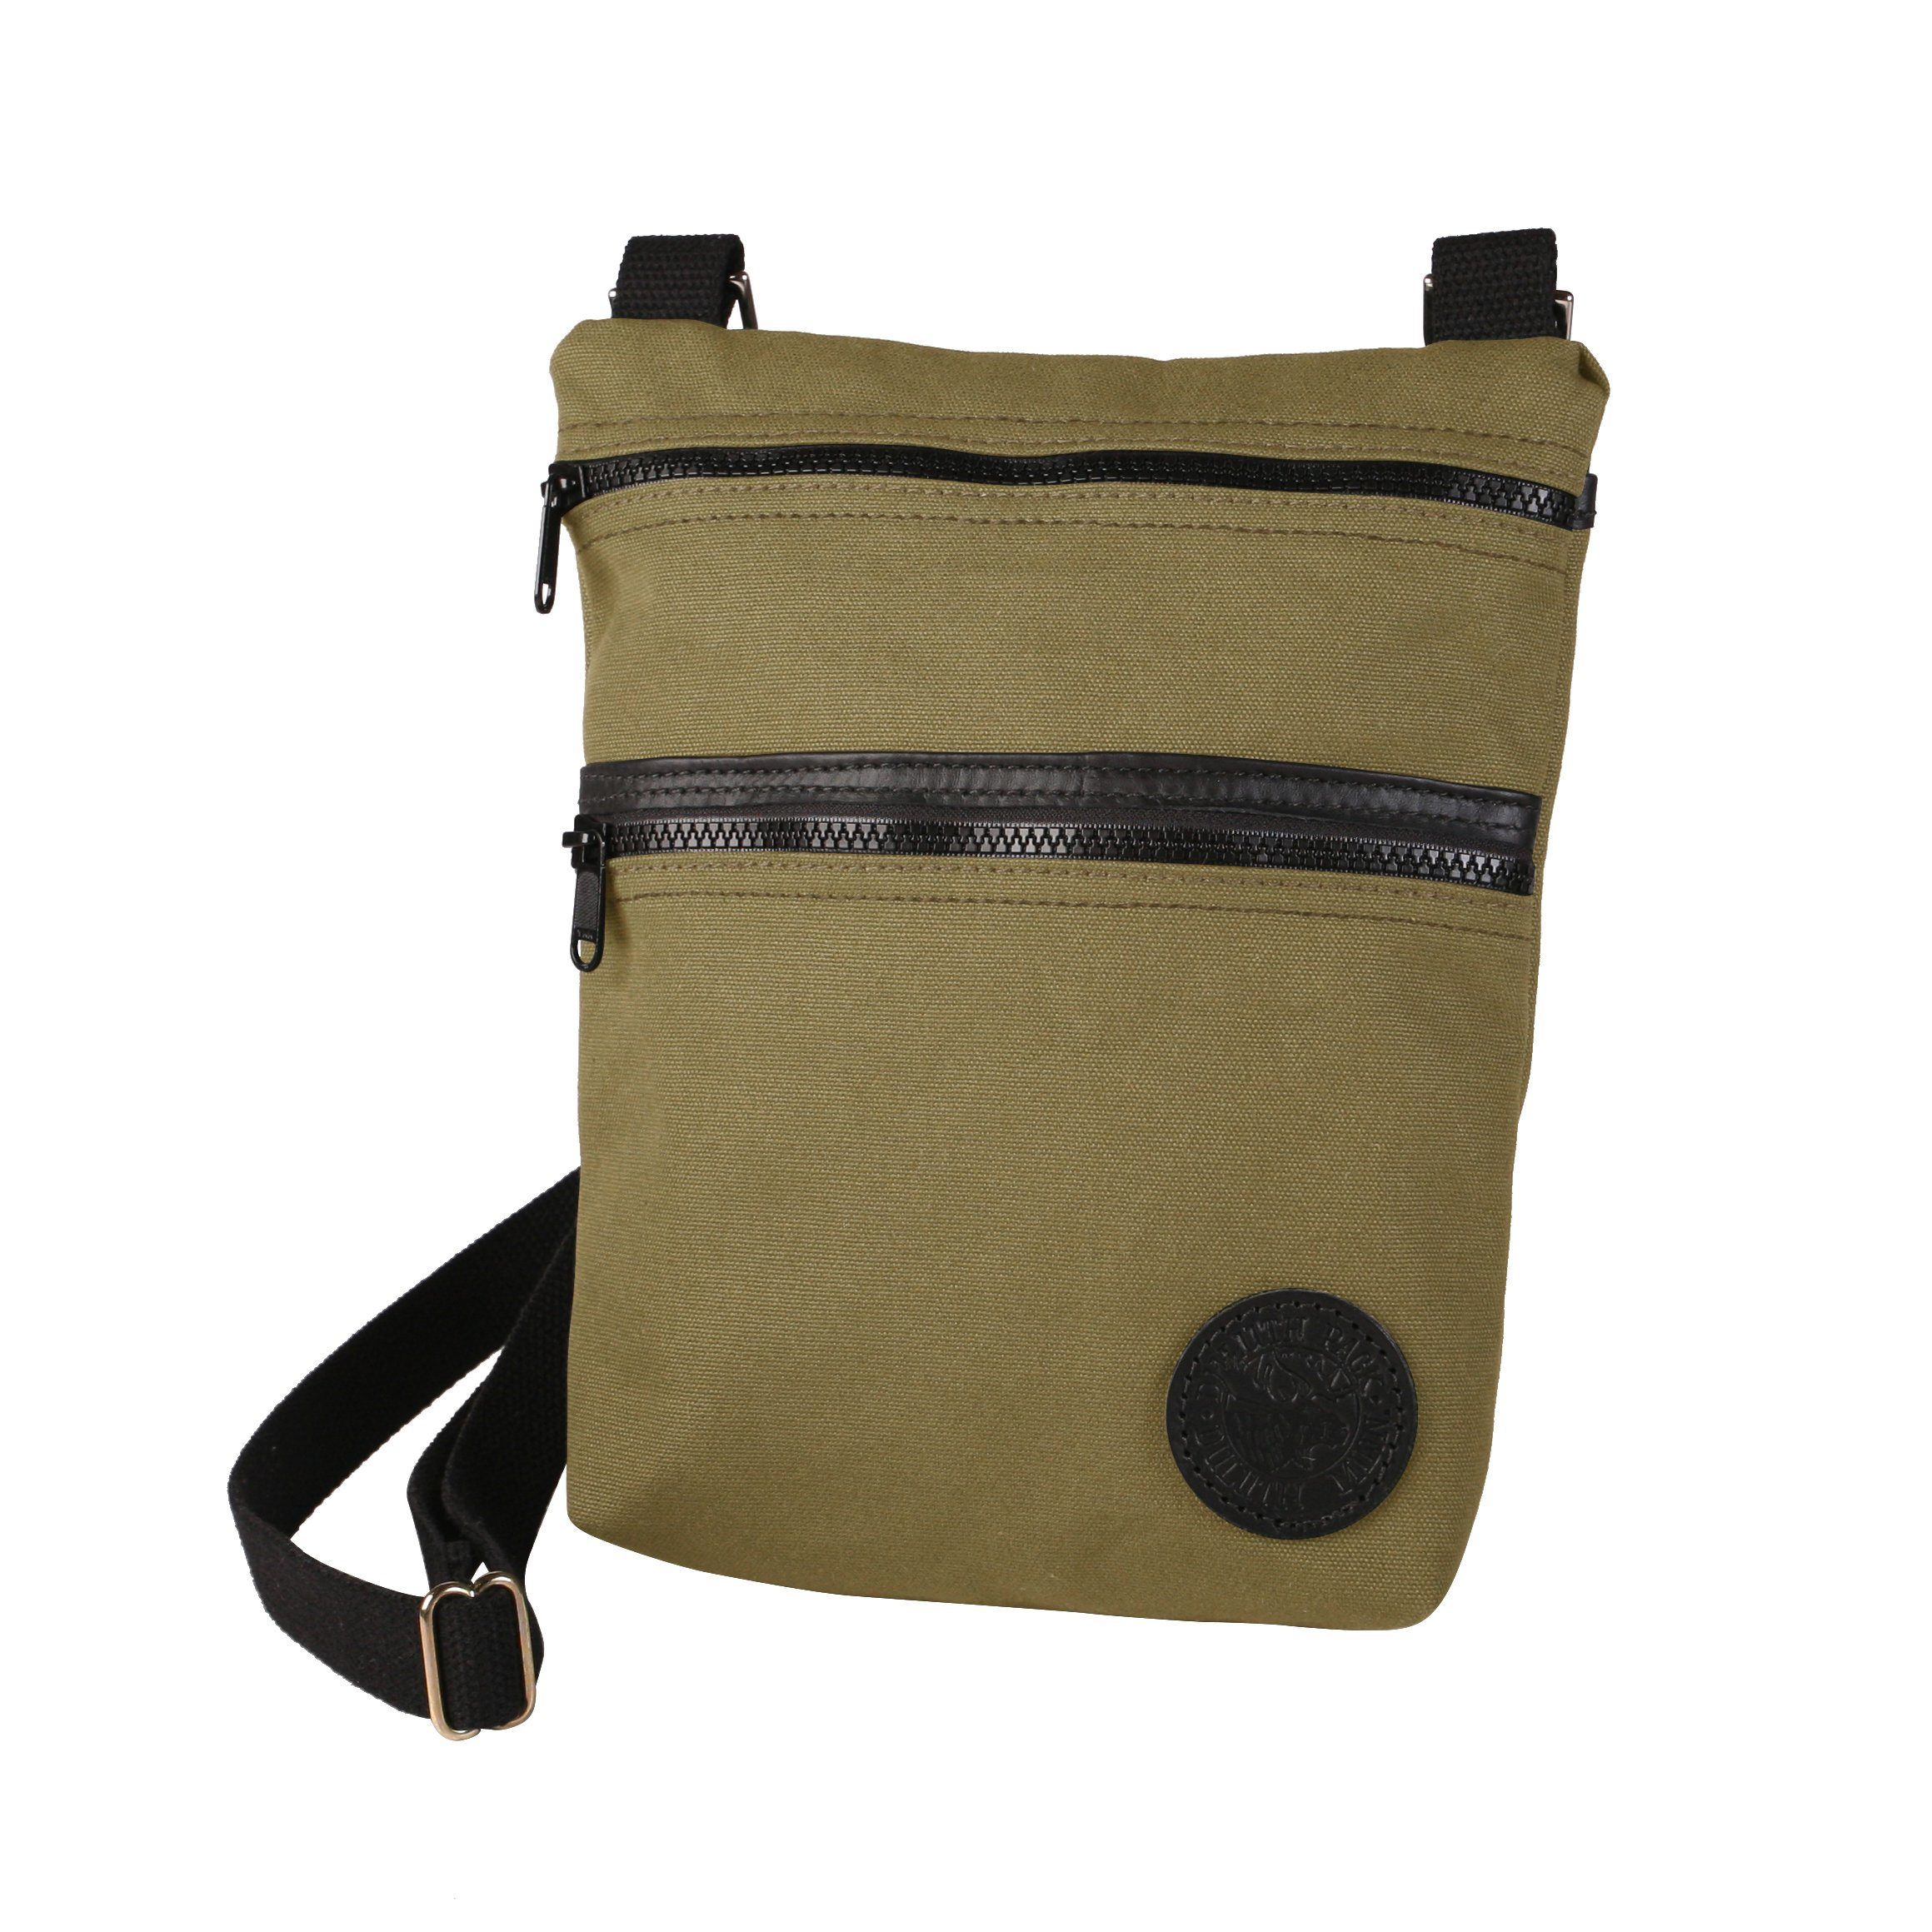 Duluth Pack Traverse Cross Body Bag (Waxed, One Size)